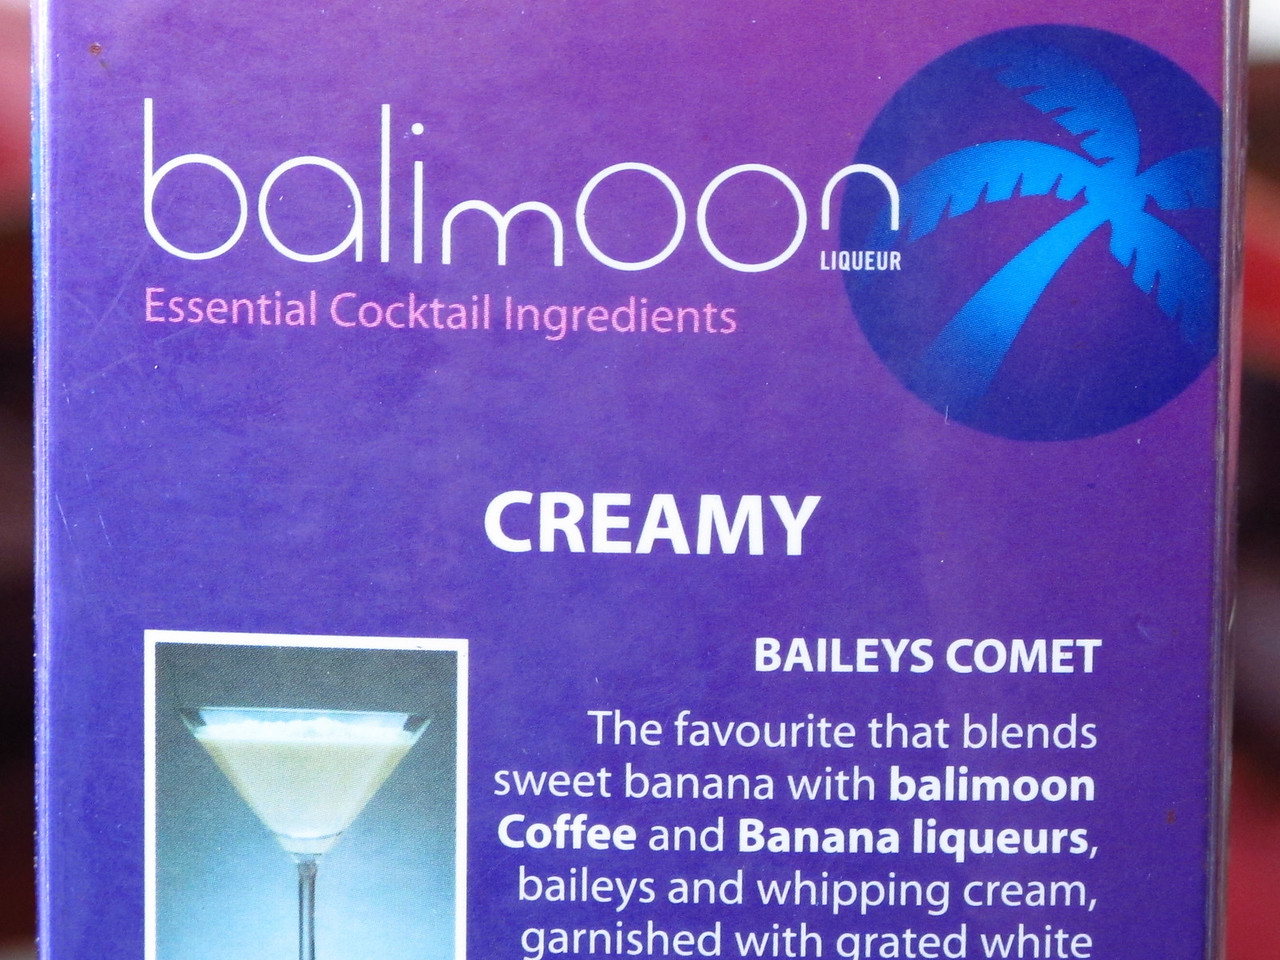 Whether you're in Bali or Lombok, you need to try the locally made flavored liquors from Bali Moon.